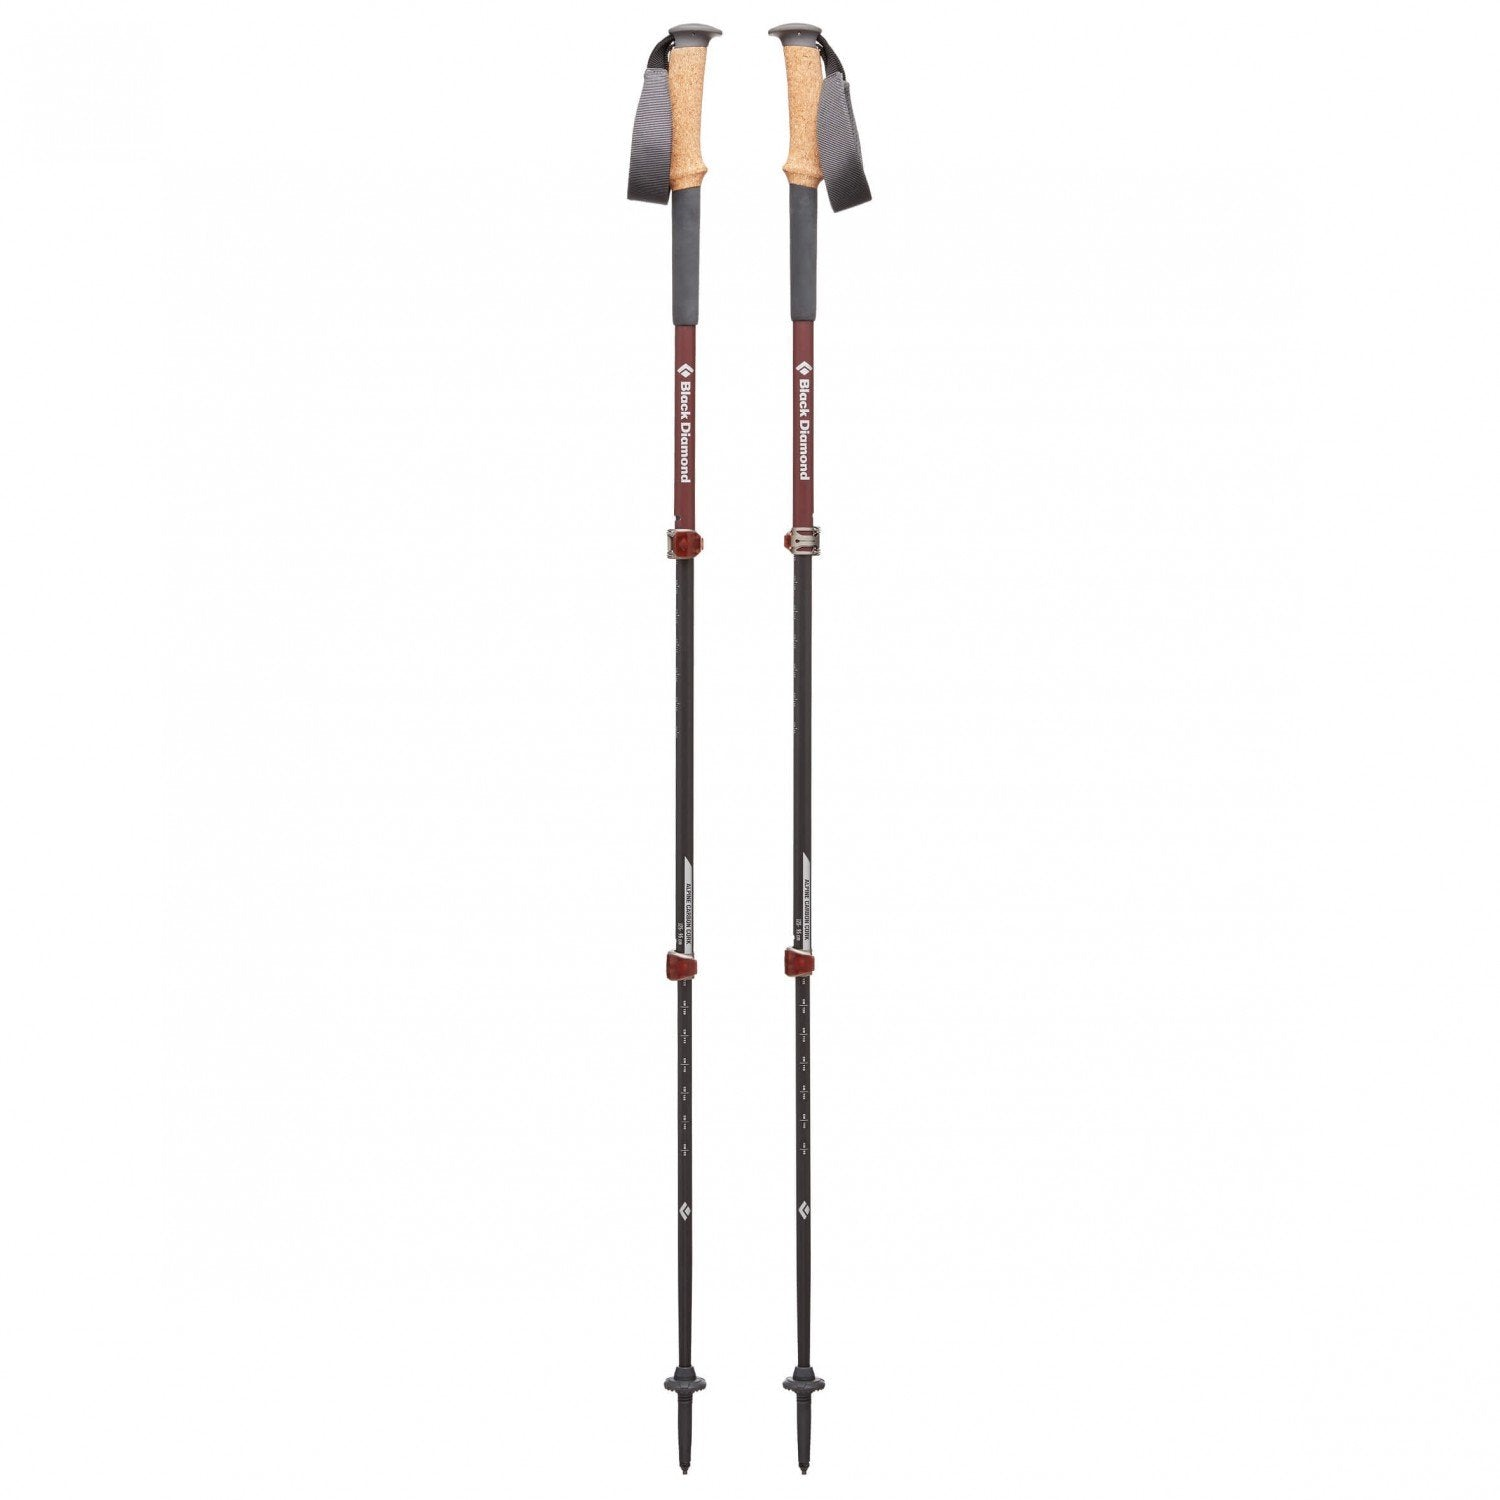 Black Diamond Alpine Carbon Cork Womens walking poles, shown in a pair fully extended